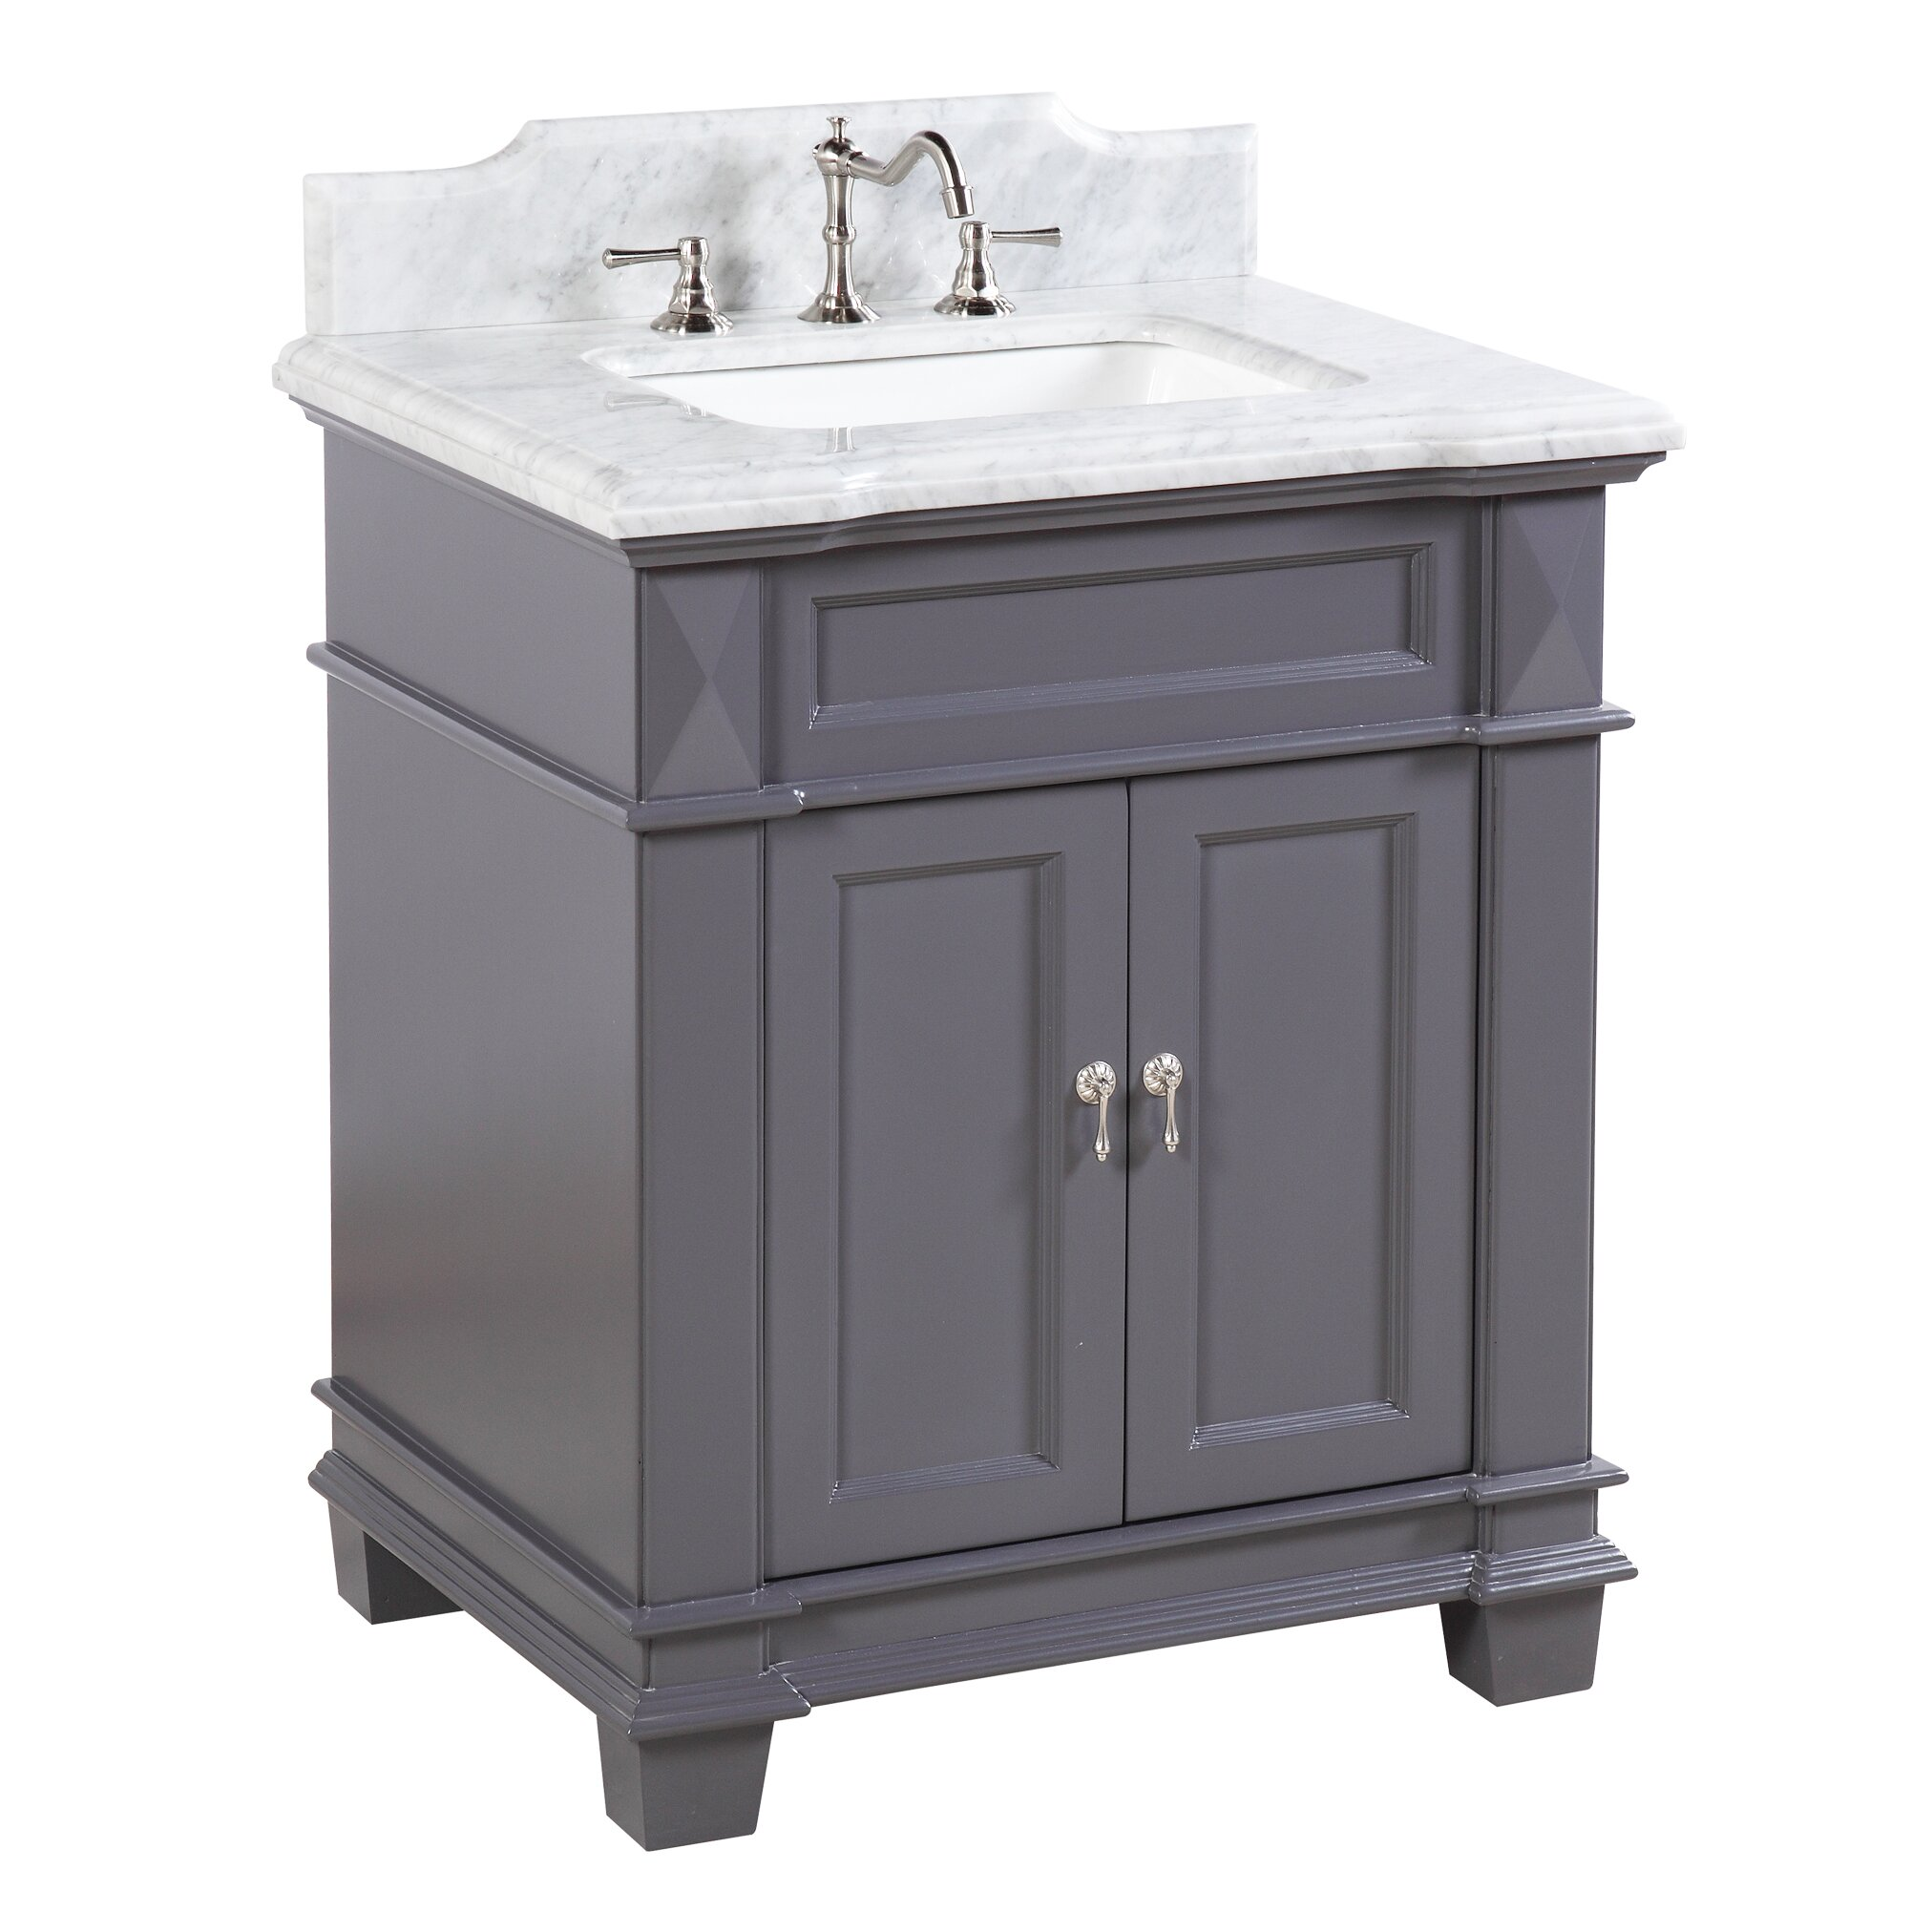 Bathroom Cabinets Louisville Ky bathroom vanities louisville ky : healthydetroiter